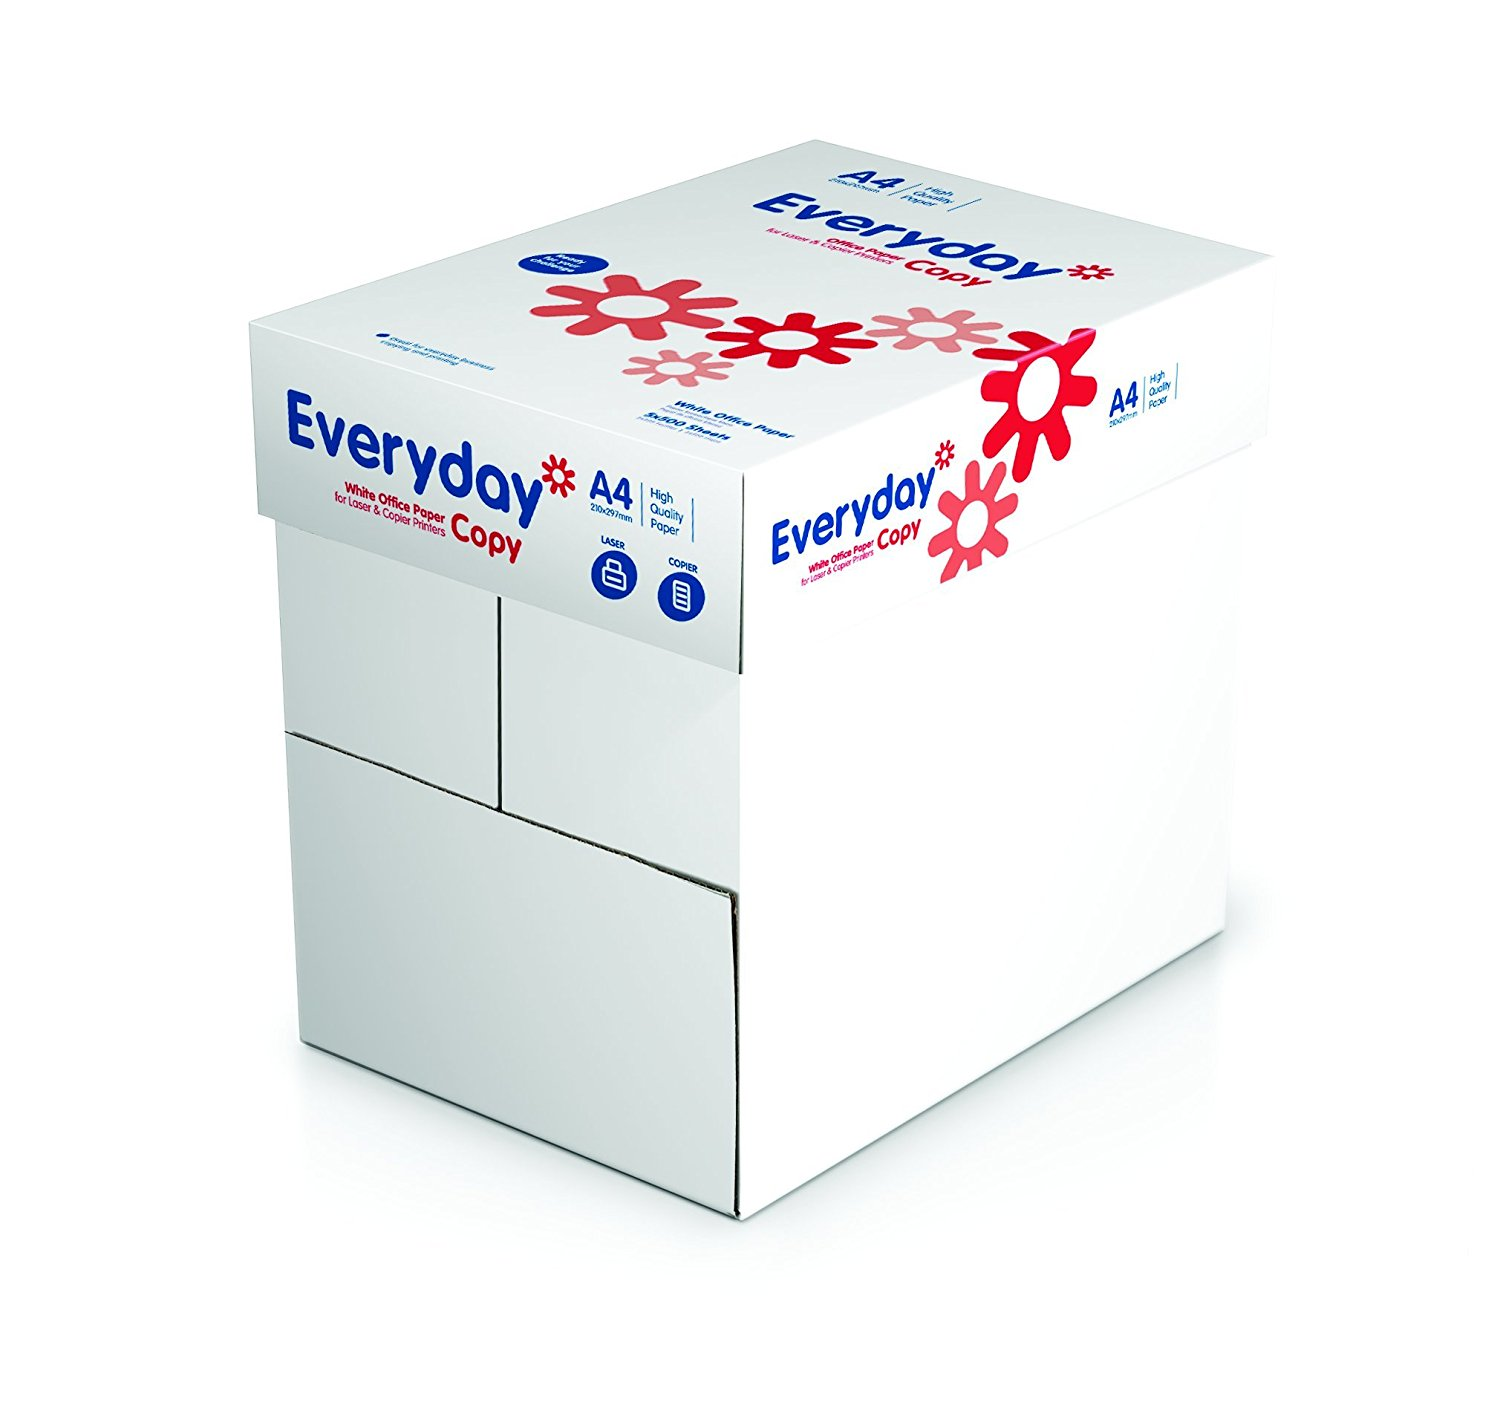 Portucel Everyday Paper 70gsm A4 BX10 reams